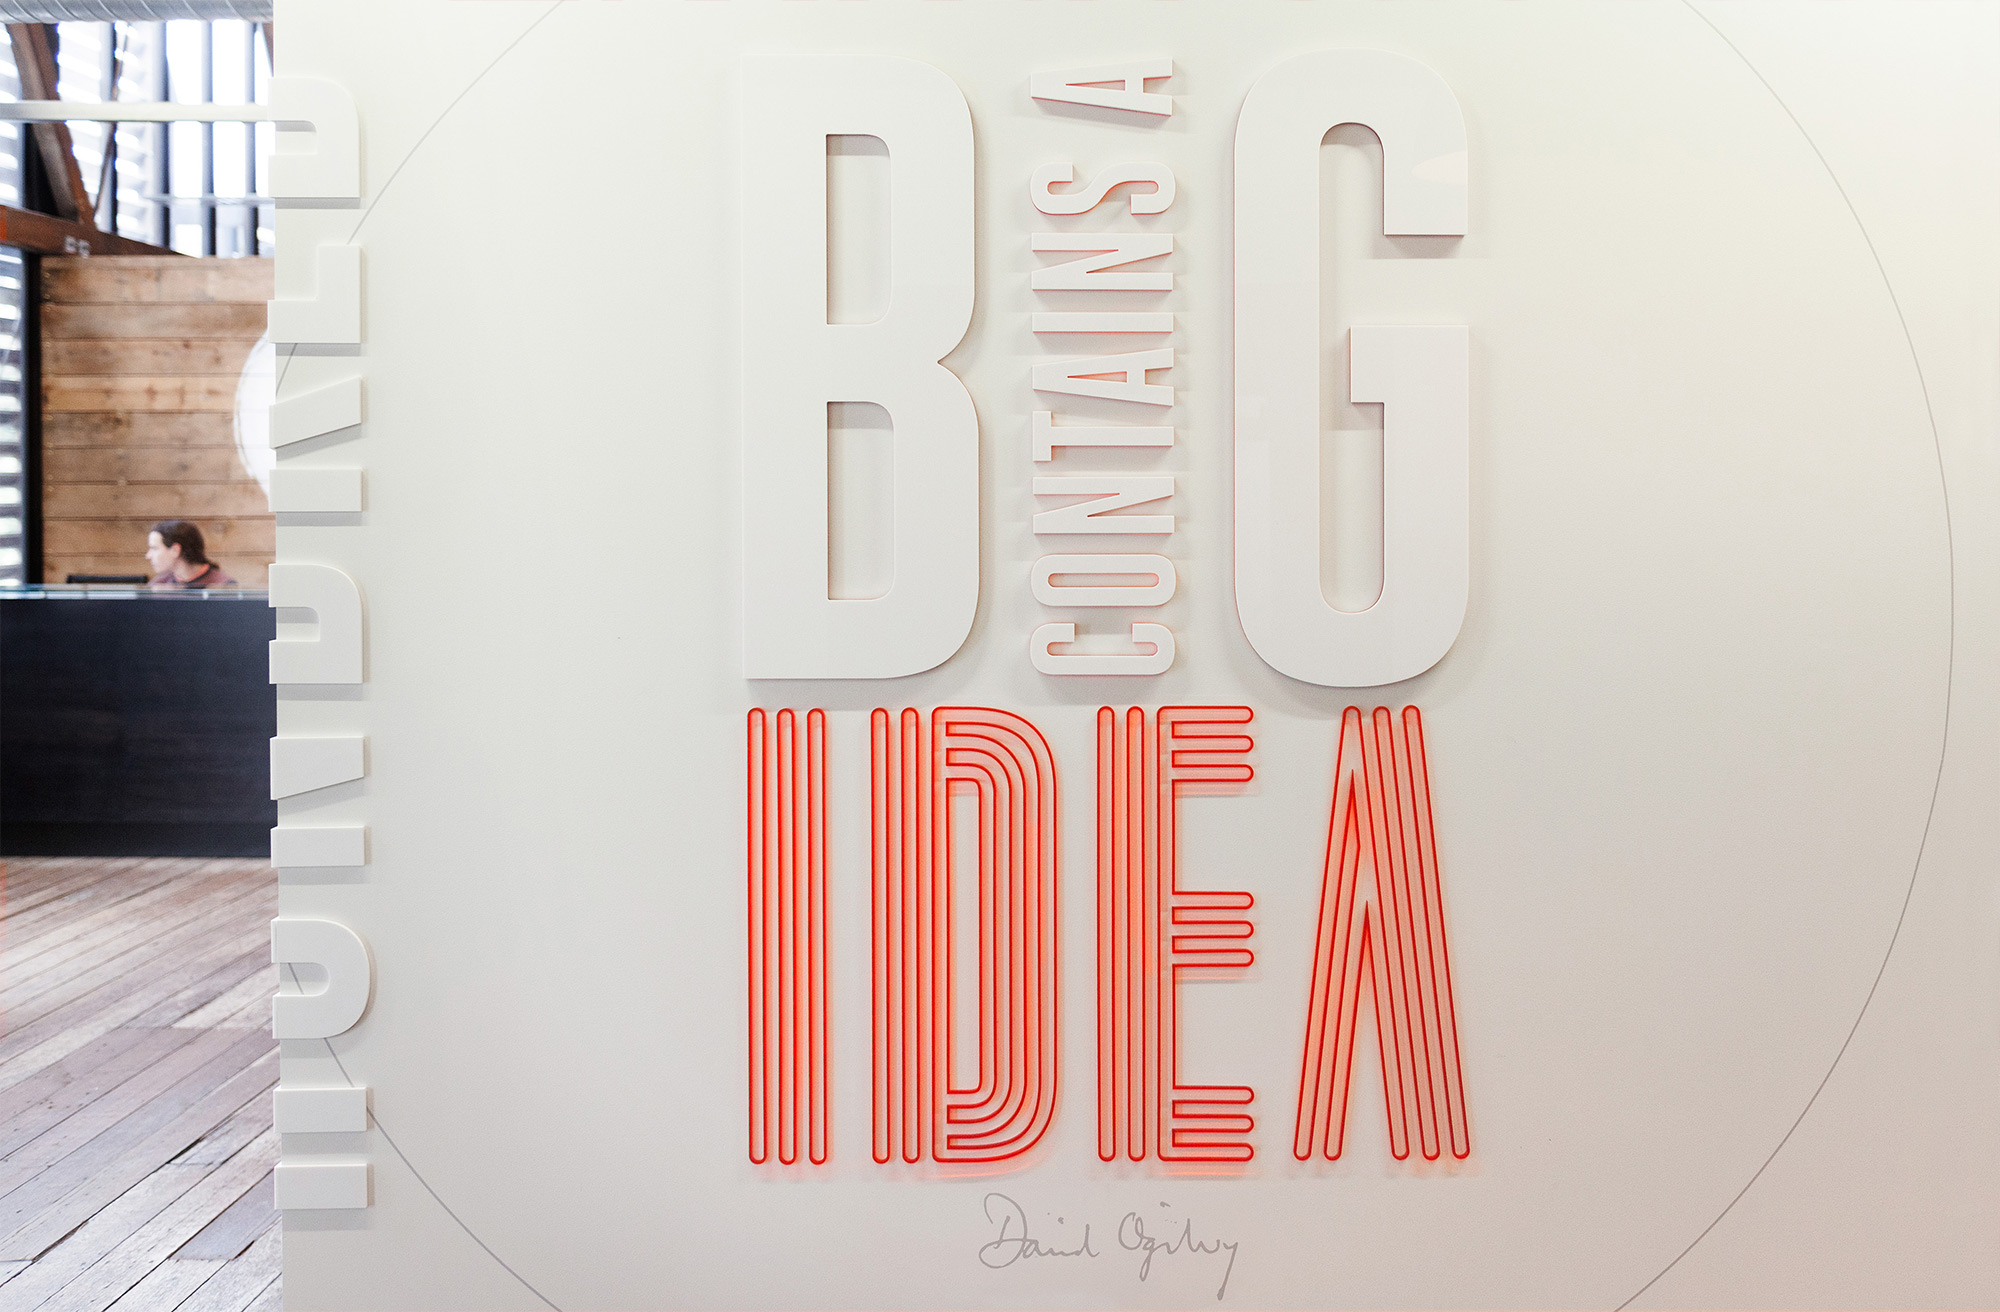 Quotes on environmental graphics for Ogilvy & Mather New Zealand HQ. @enviromeant.com